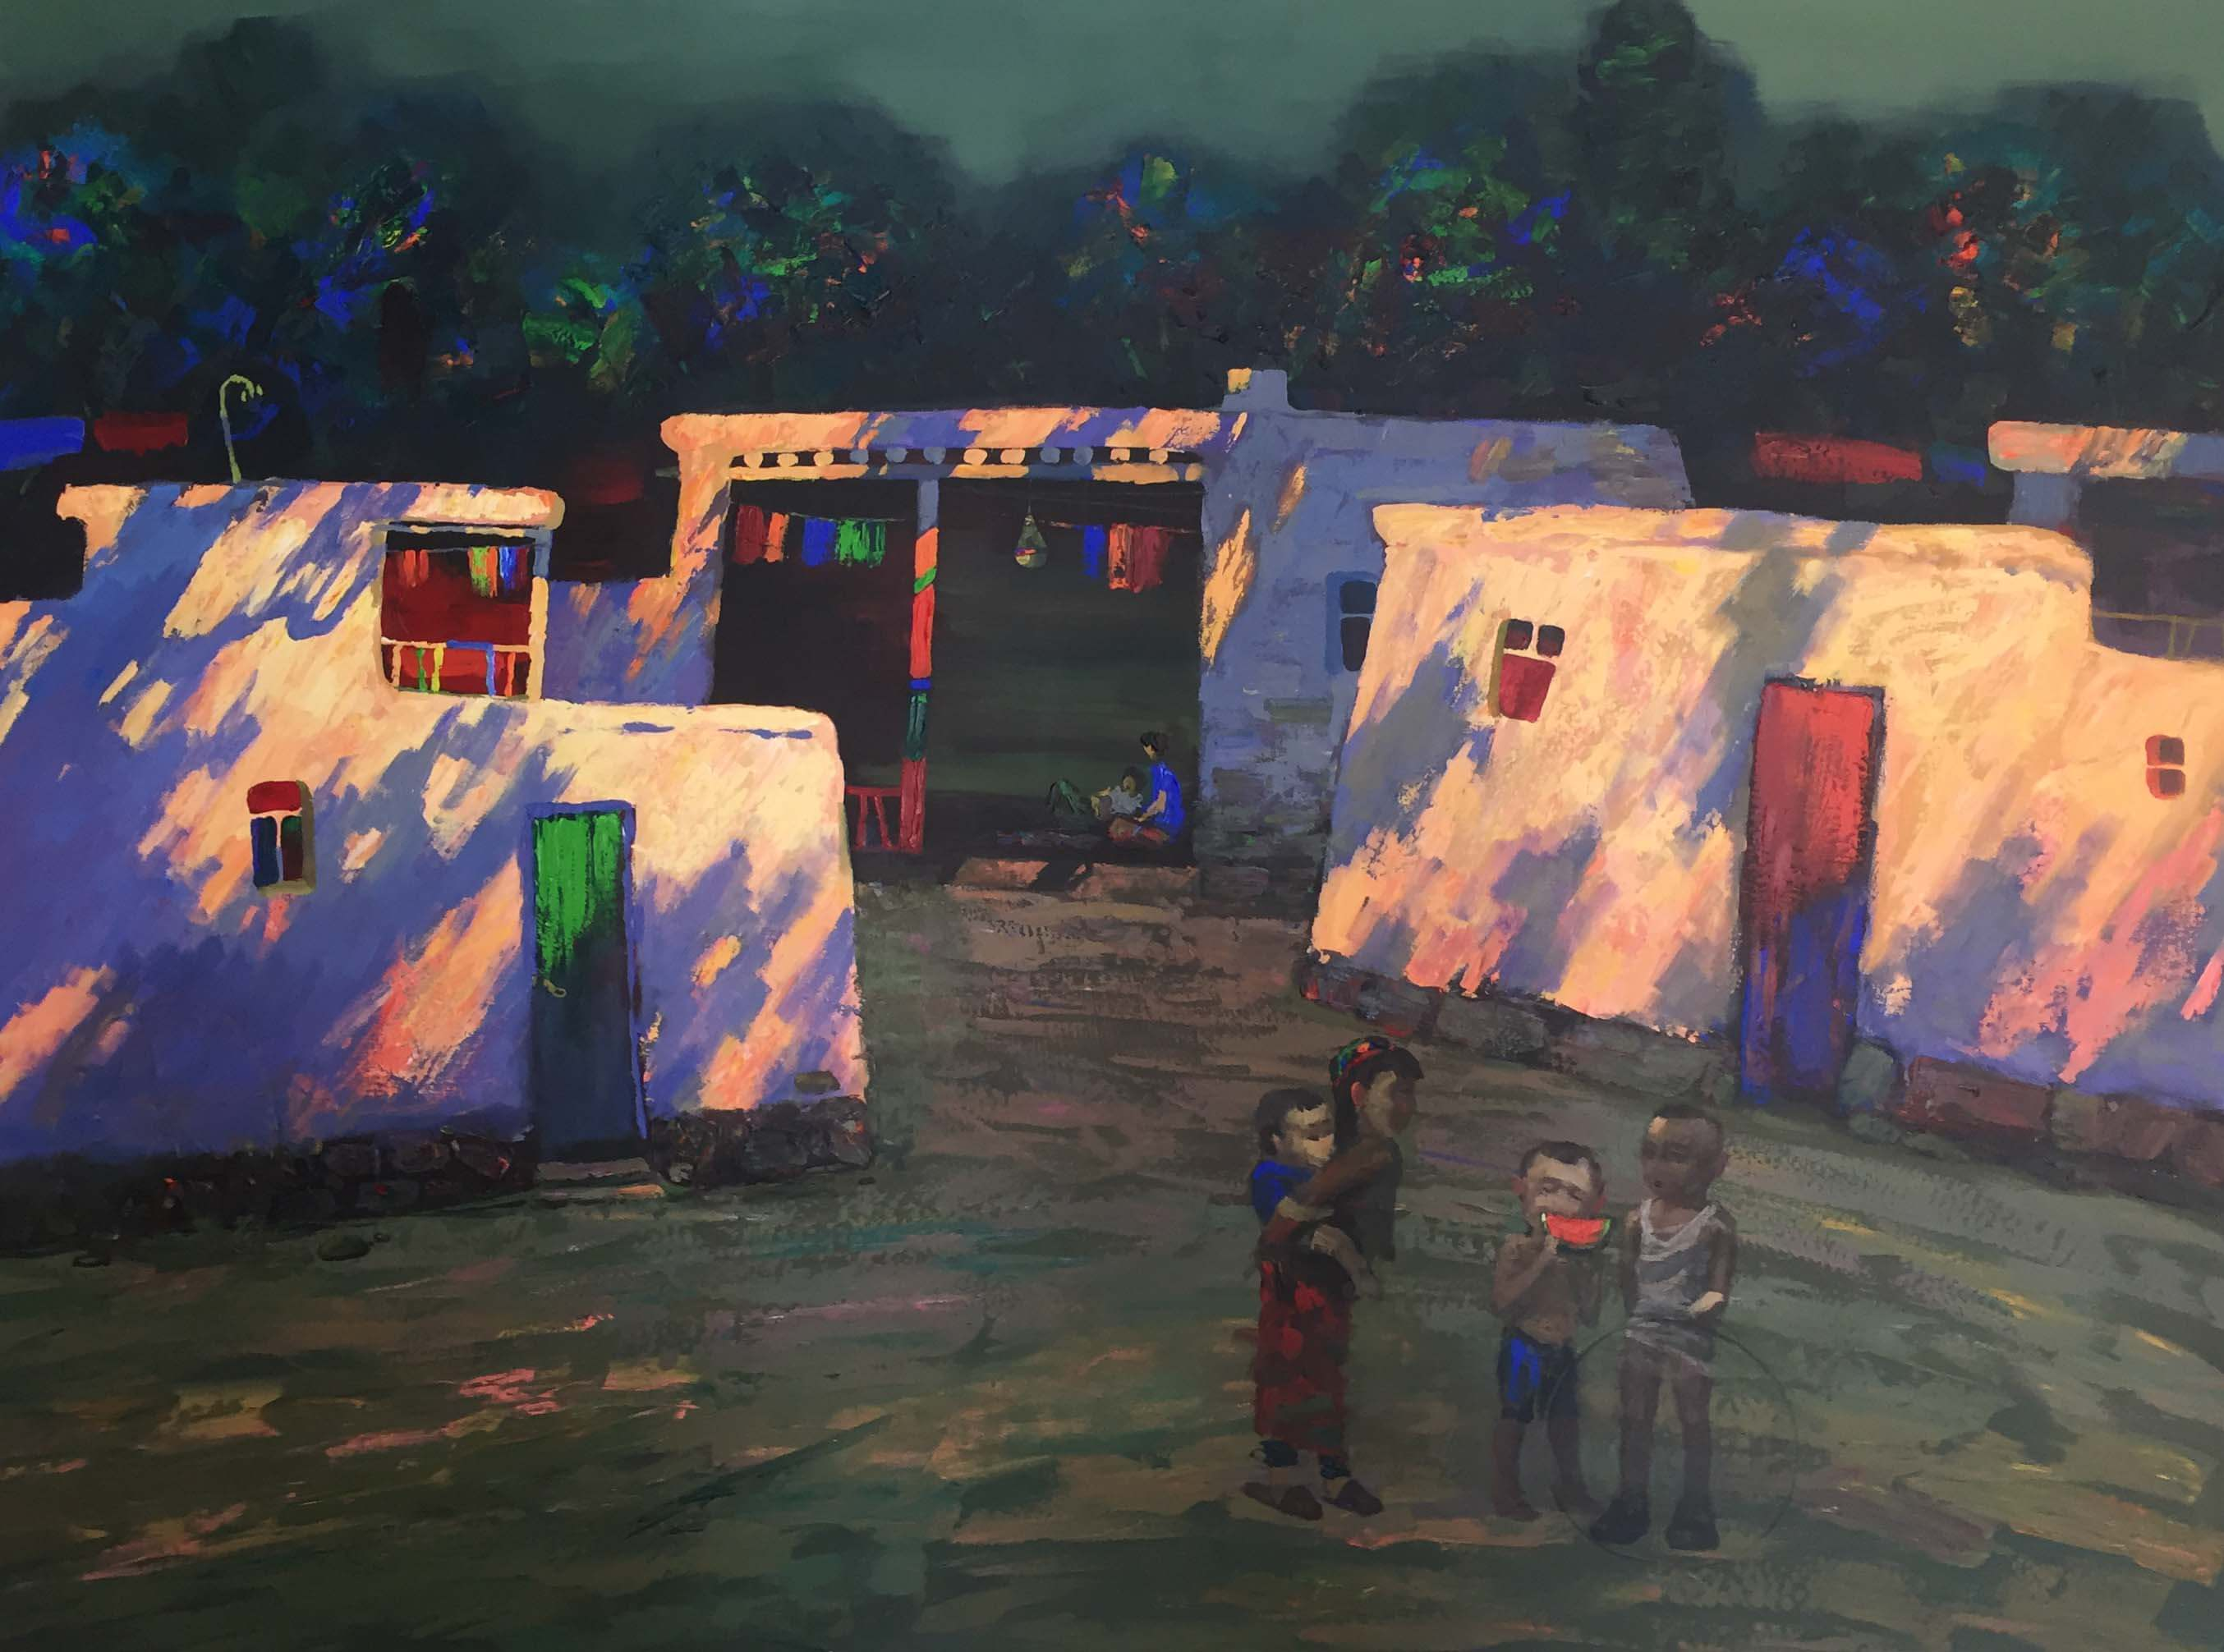 Kyrgyzstan Artists Painting Exhibition Consisting Of 45 Artworks Exclusively Prepared By 10 Artists From Kyrgyzstan For Cyprus Museum of Modern Arts Opens By Minister Of Agriculture And Natural Resources Dursun Oğuz…